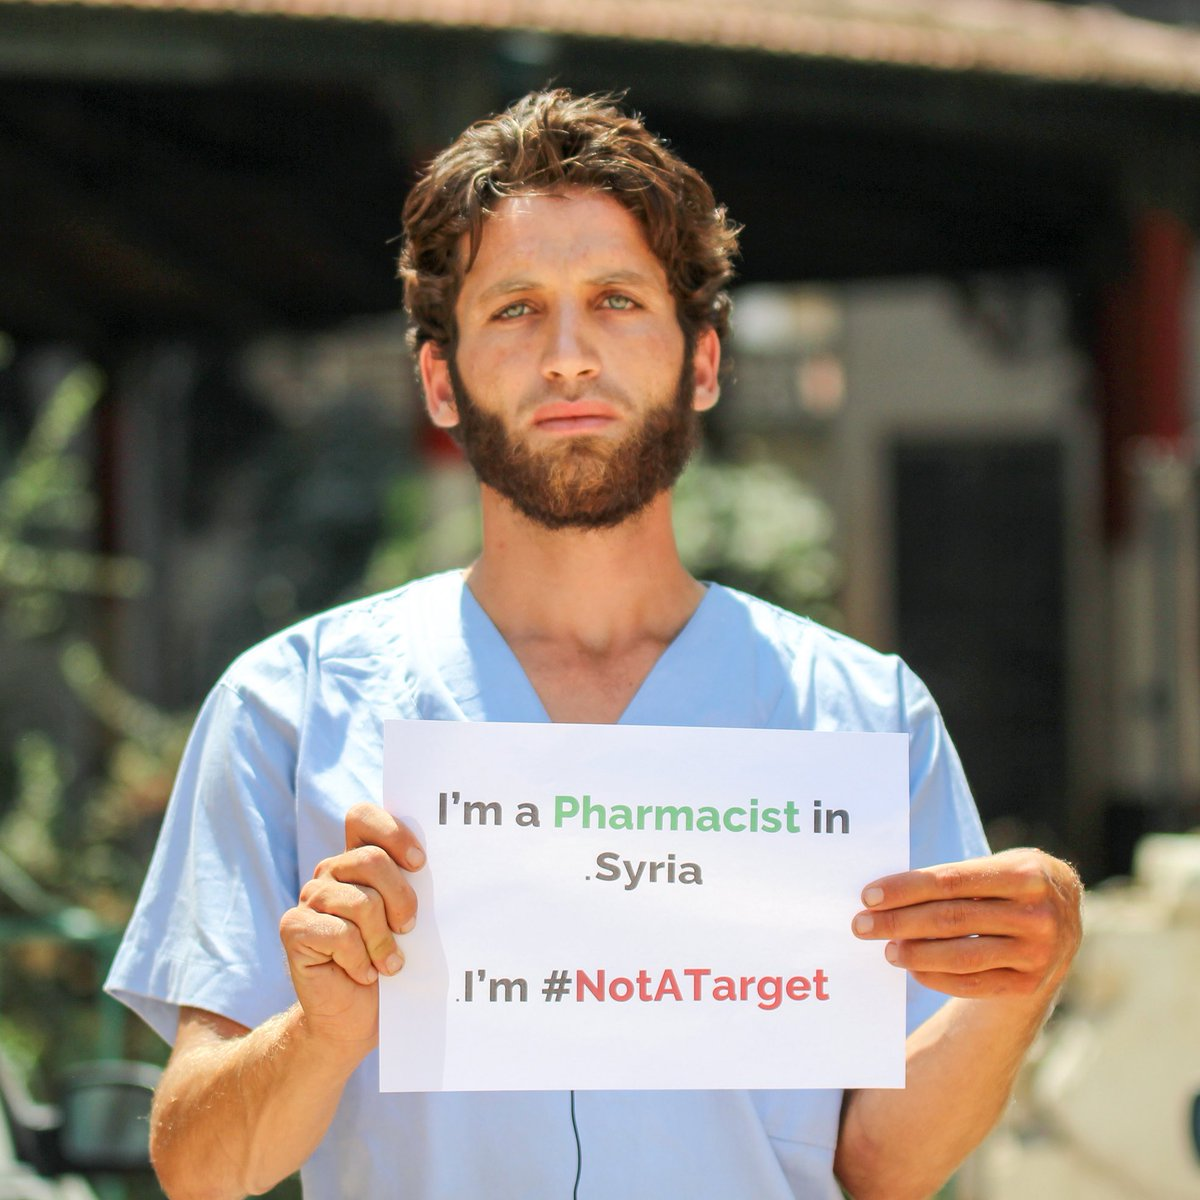 I'm a pharmacist in #Syria. I'm #NotaATarget